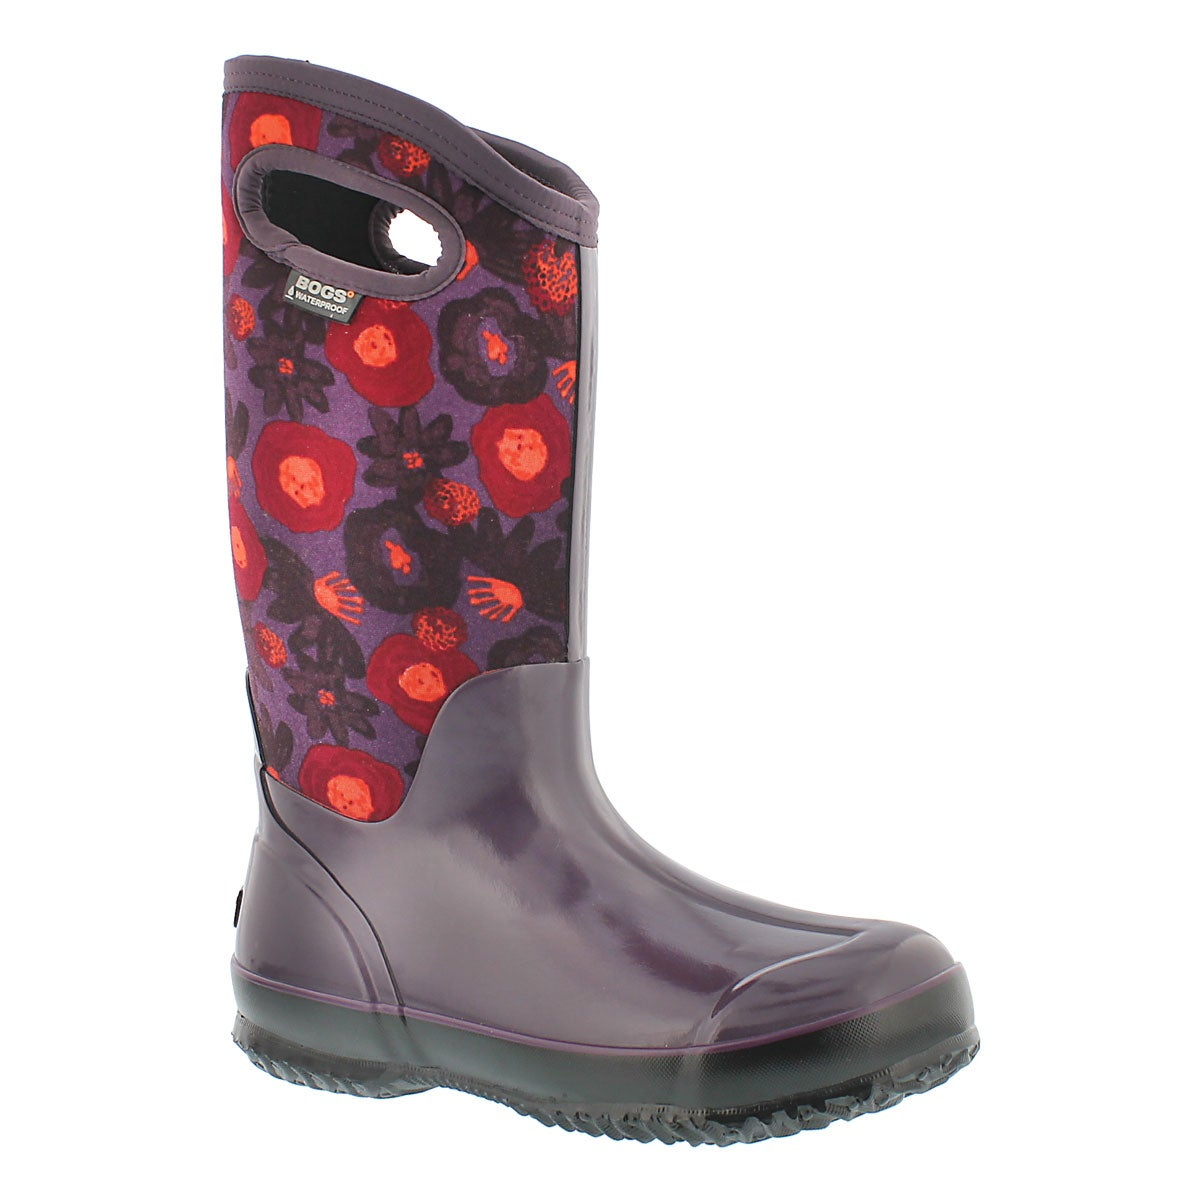 Original Bogs Muck Boots Womens Pull On Classic Paisley Floral Tall 72031 | EBay